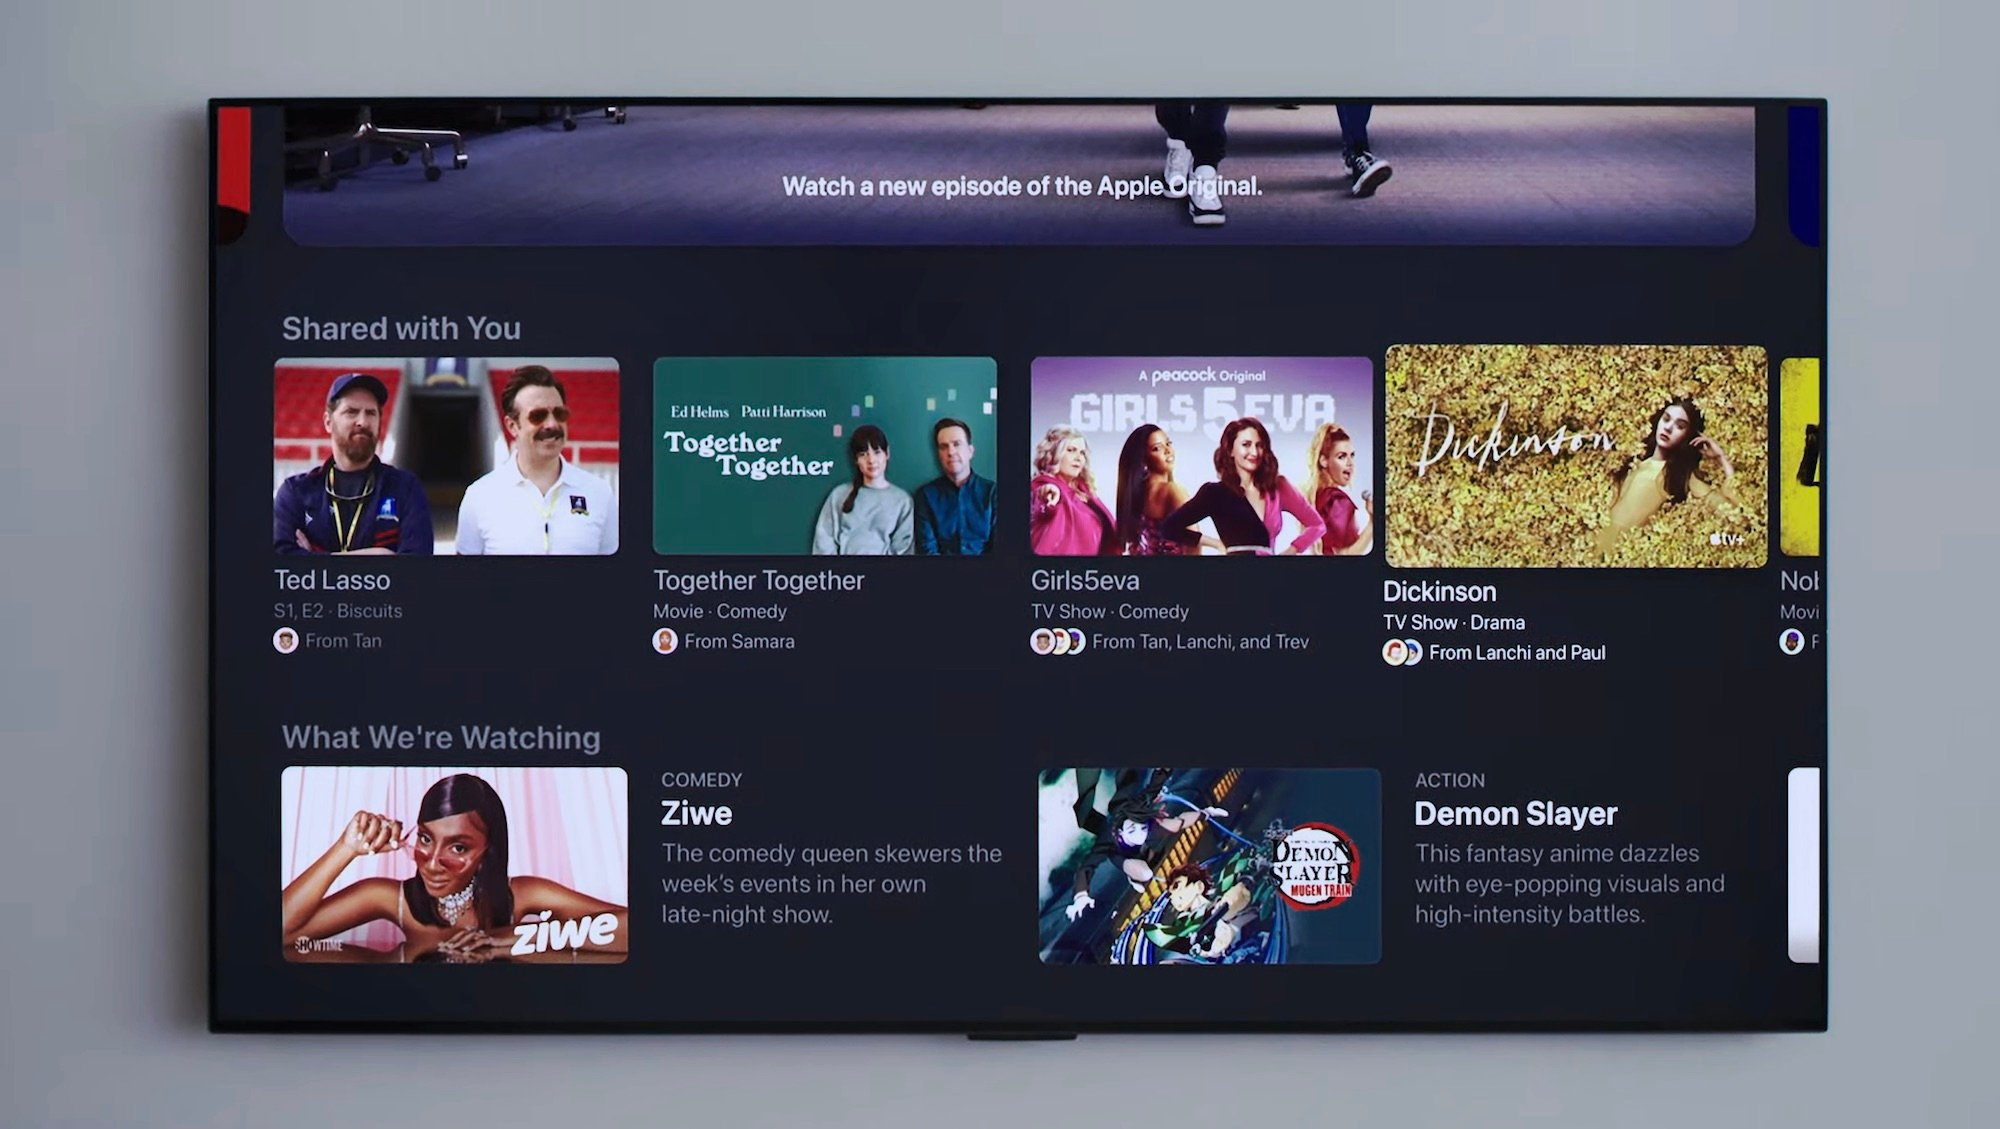 shared with you feature in tvOS 15.